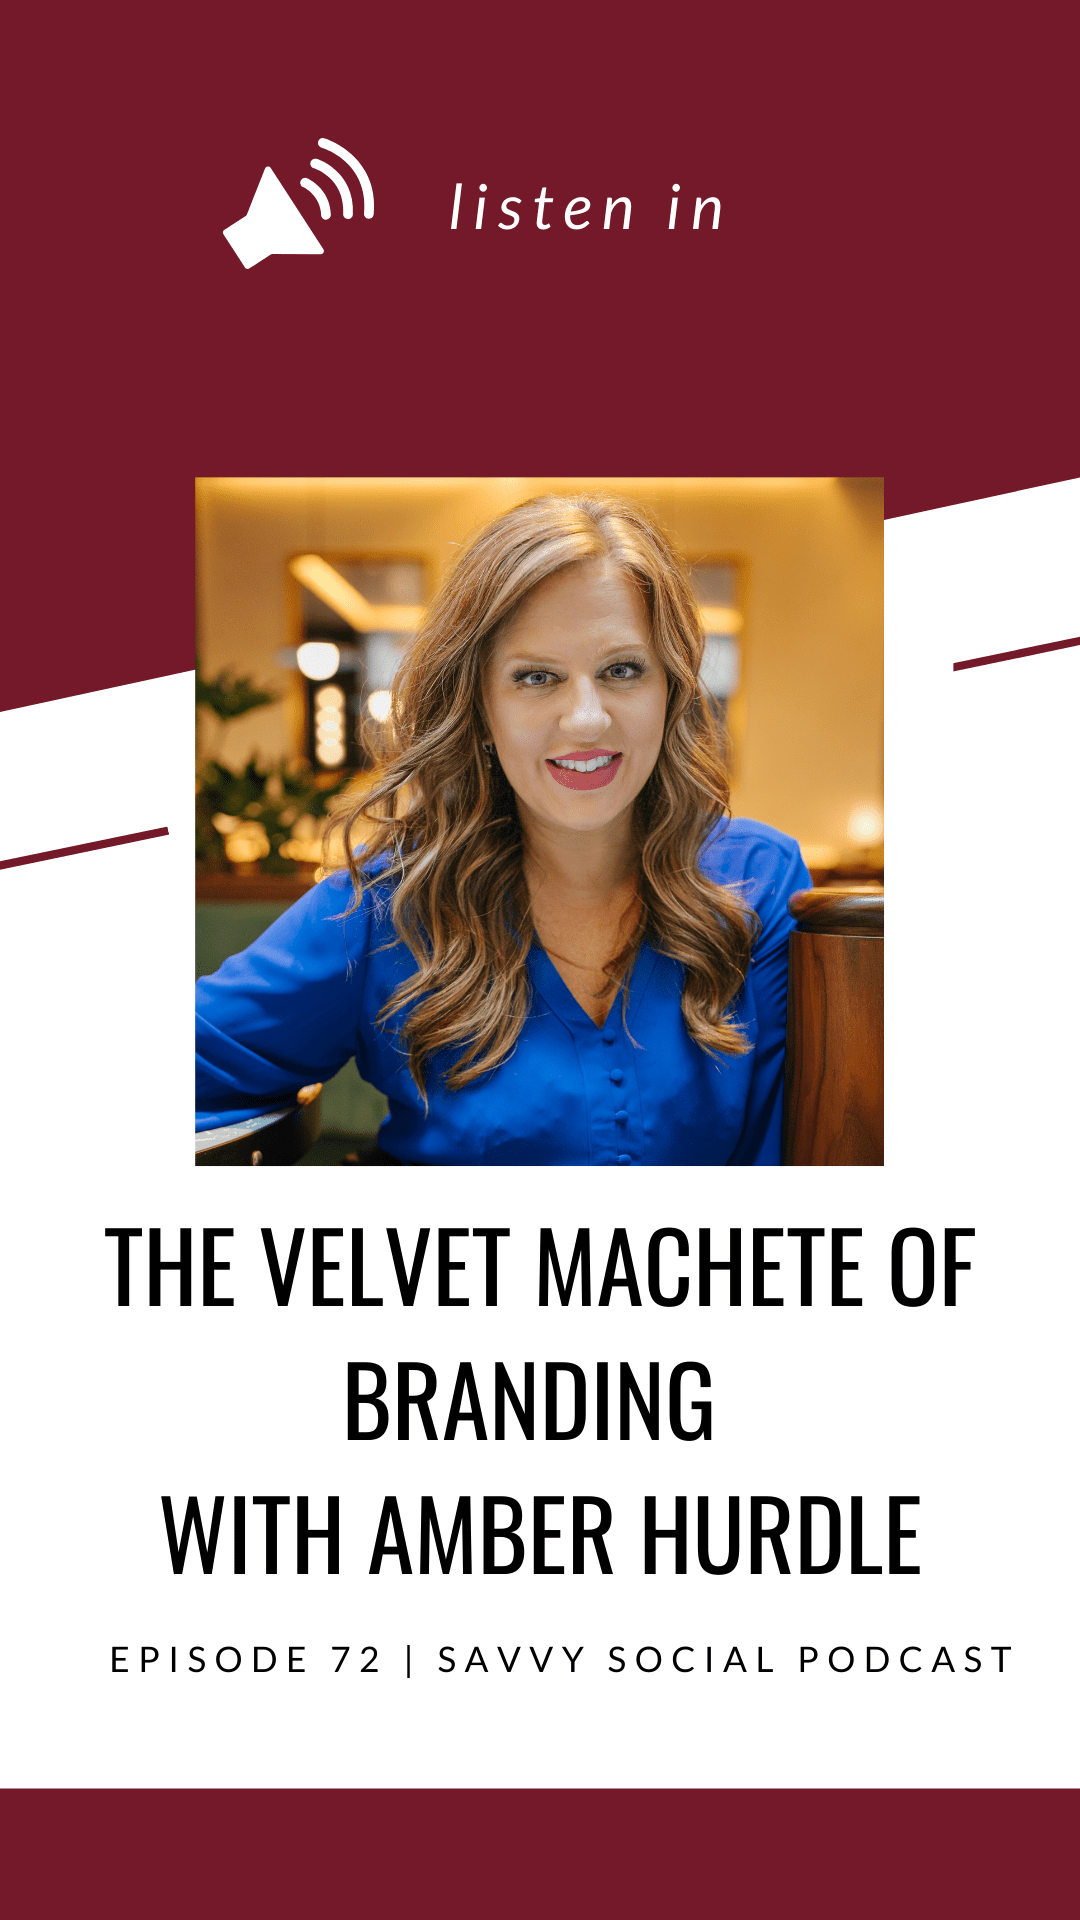 Amber Hurdle shares branding tips for your business, the importance of making yourself different and tons of strategy and social media tips for business owners.